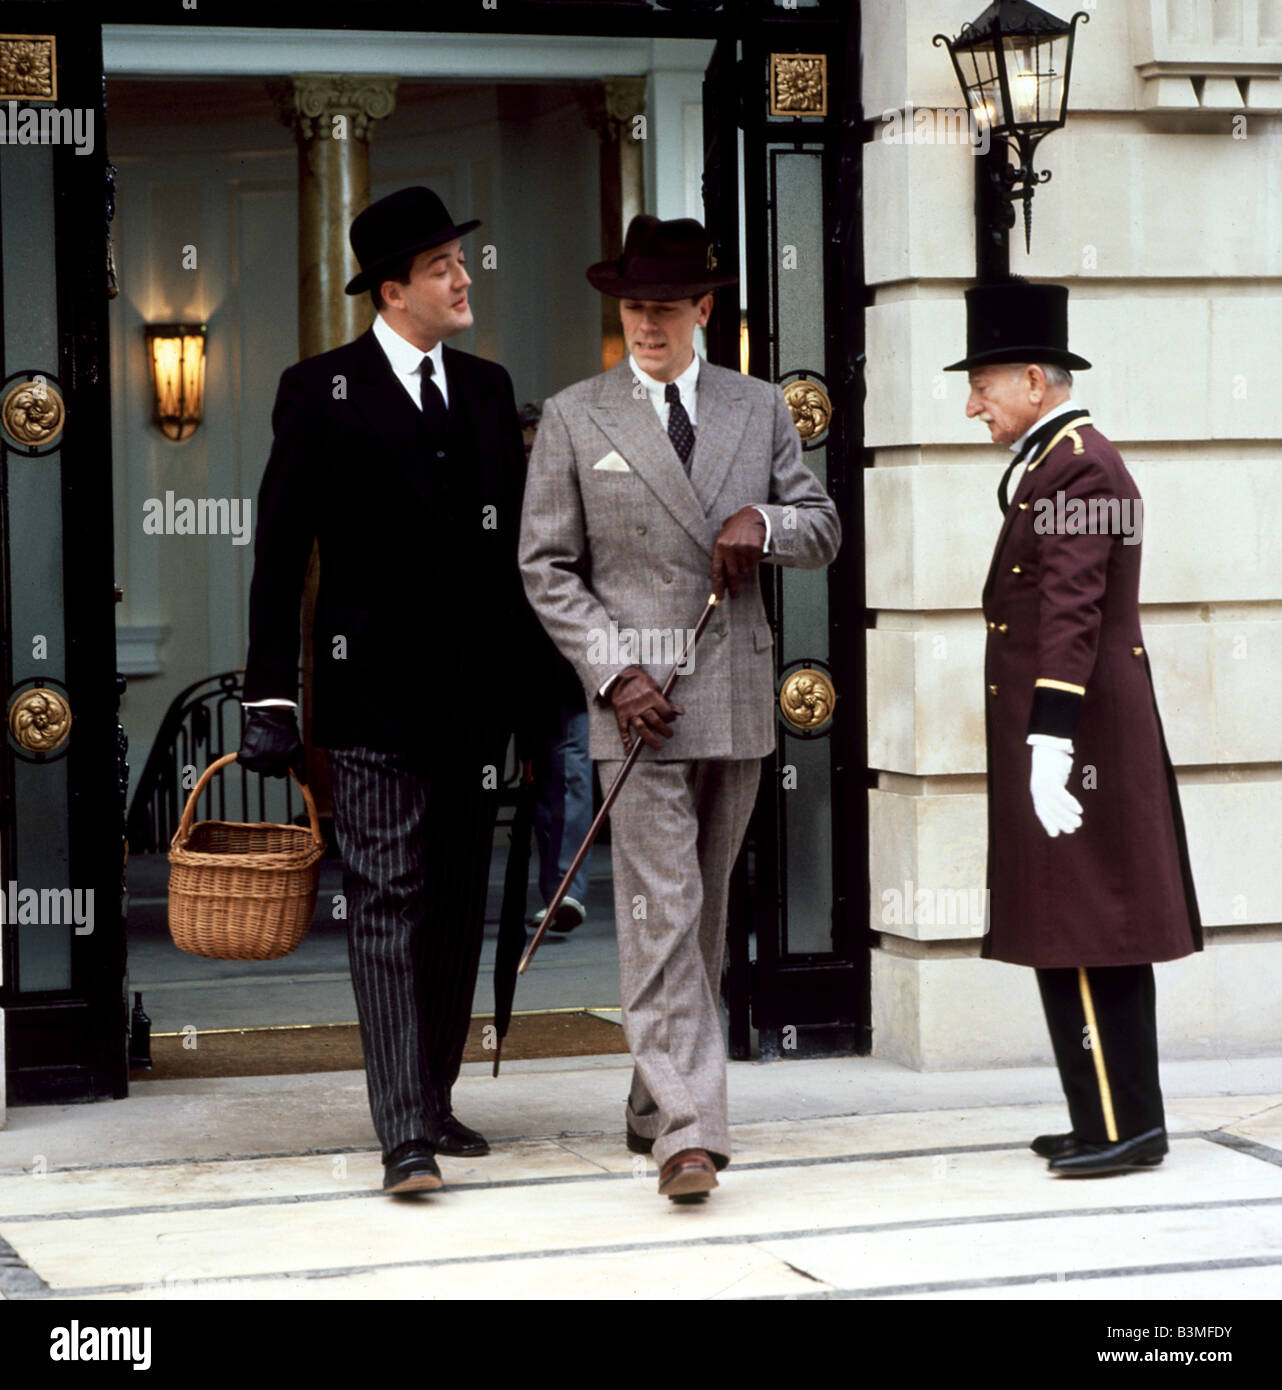 JEEVES AND WOOSTER  UK TV series with Stephen Fry at left and Hugh Laurie - Stock Image